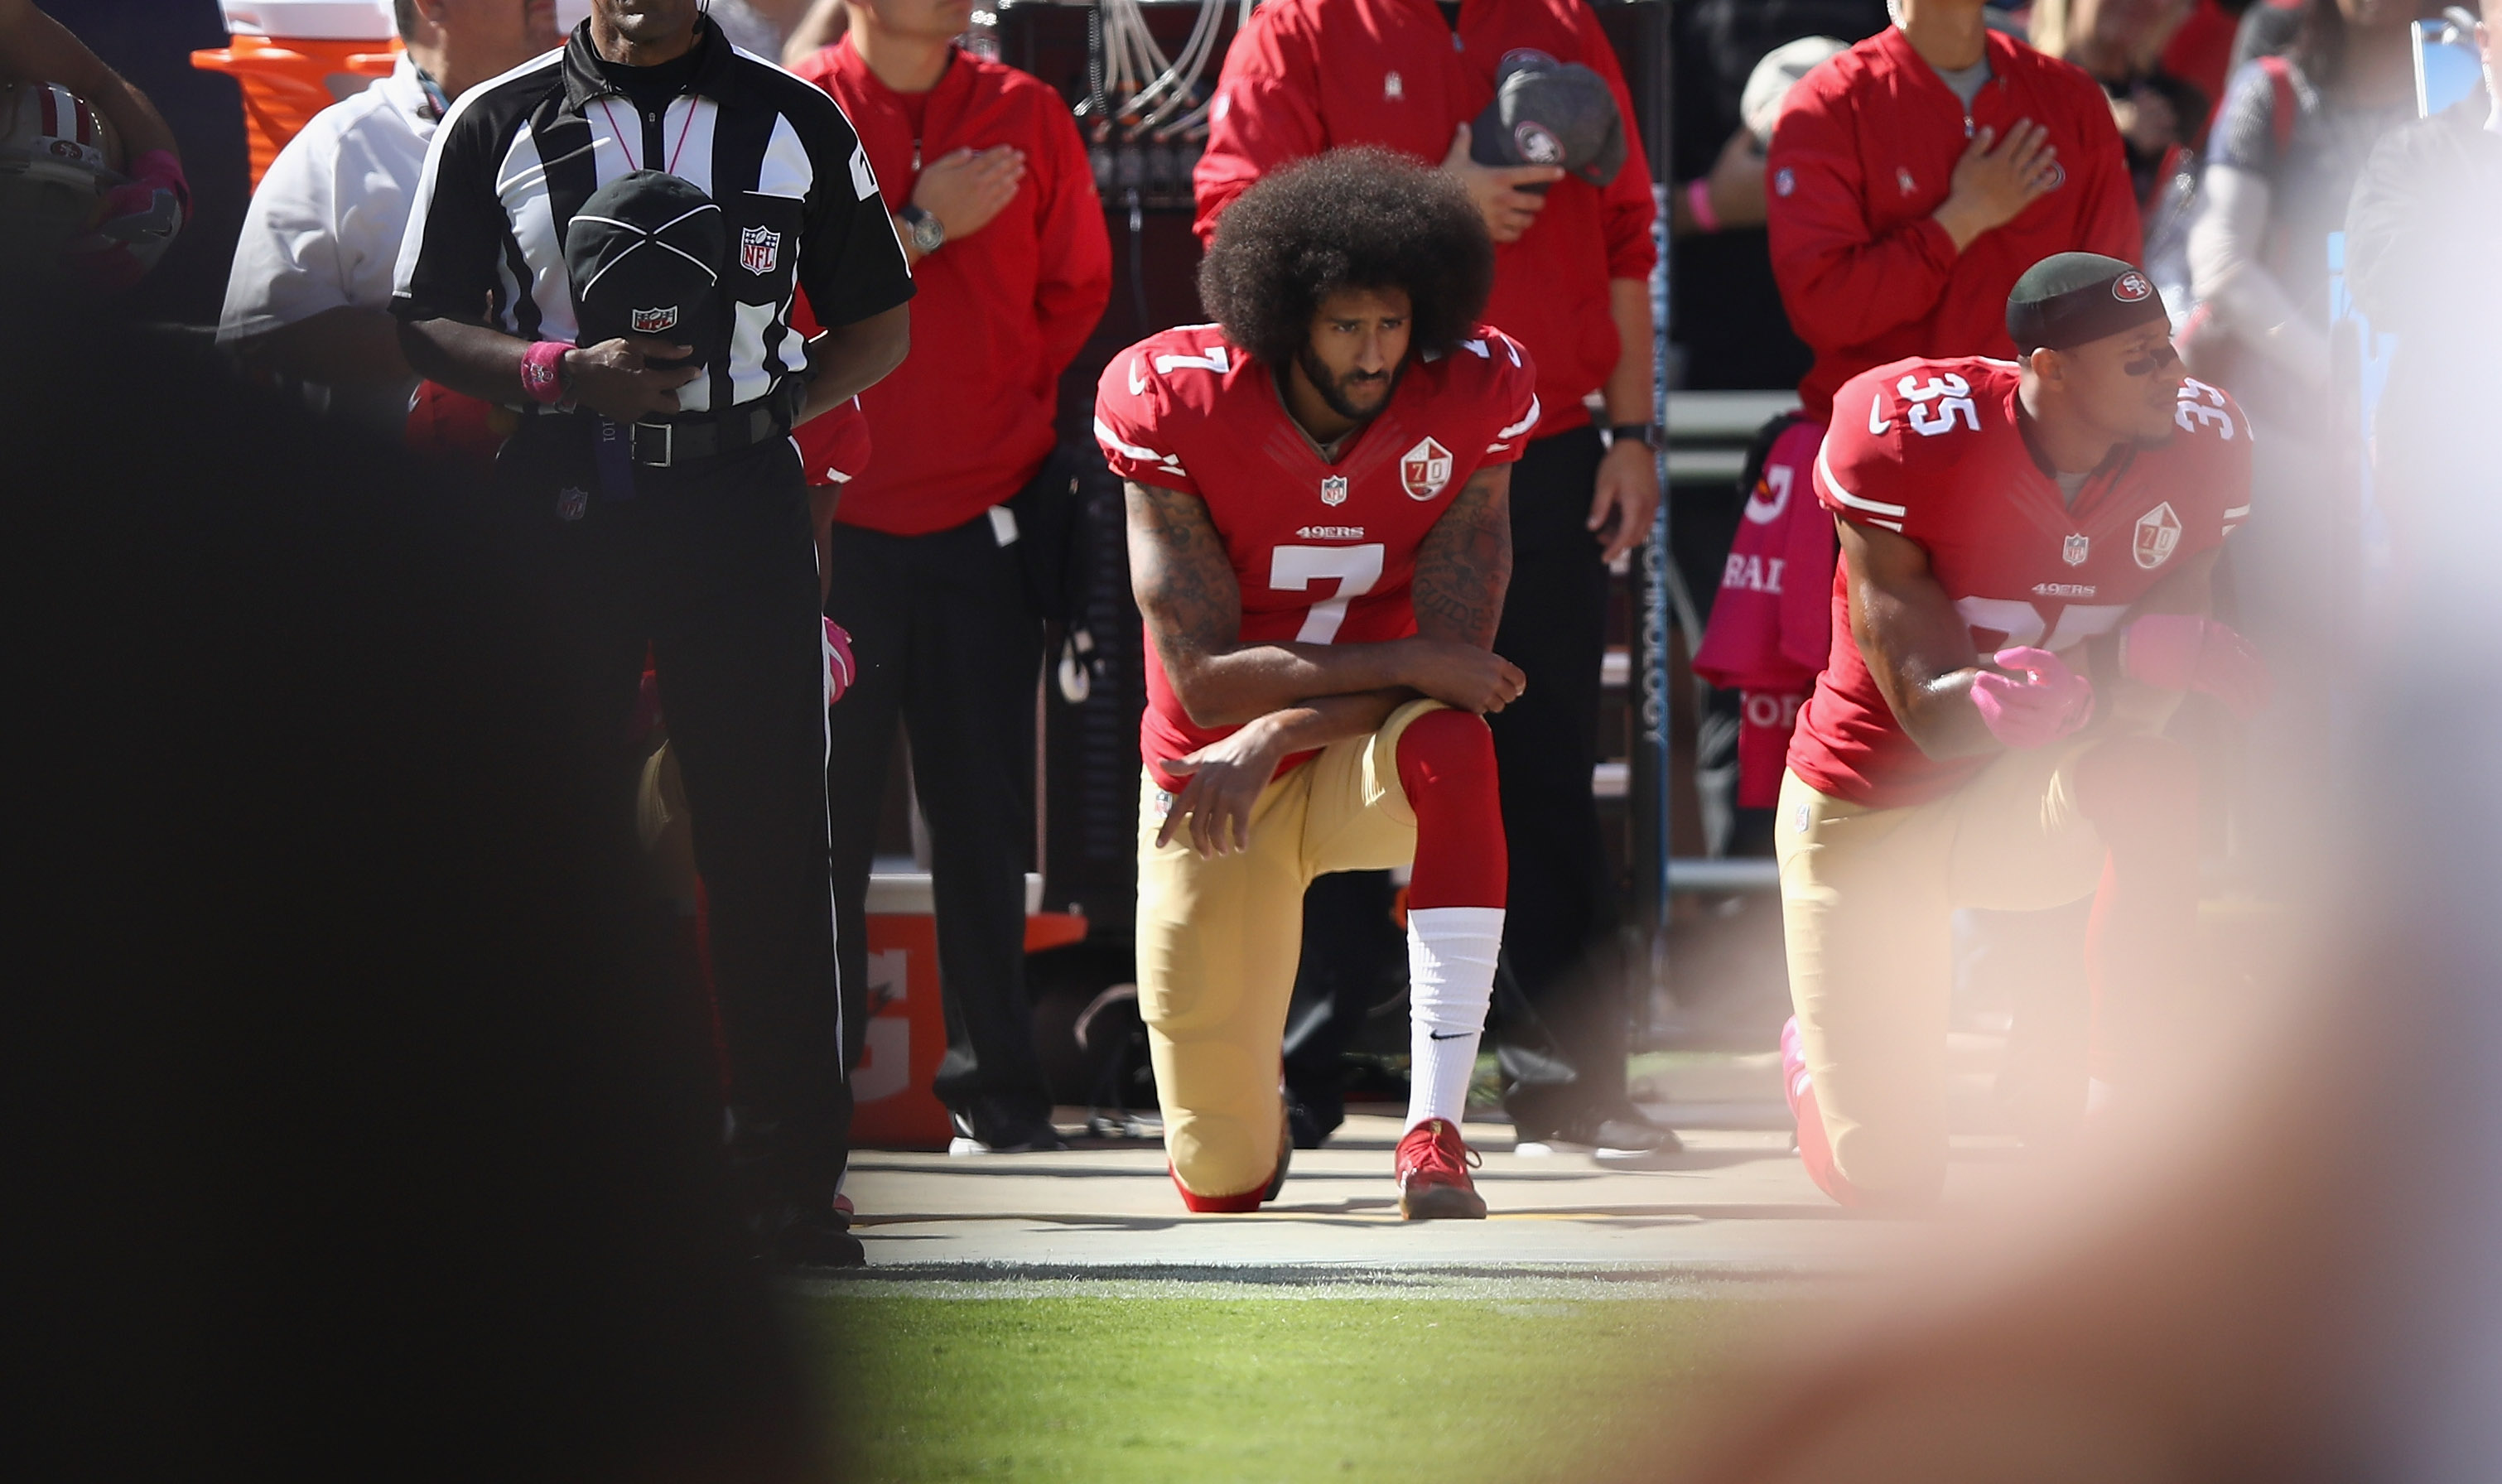 Colin Kaepernick of the San Francisco 49ers kneels for the National Anthem before their game against the Tampa Bay Buccaneers at Levi's Stadium on October 23, 2016 in Santa Clara, California.